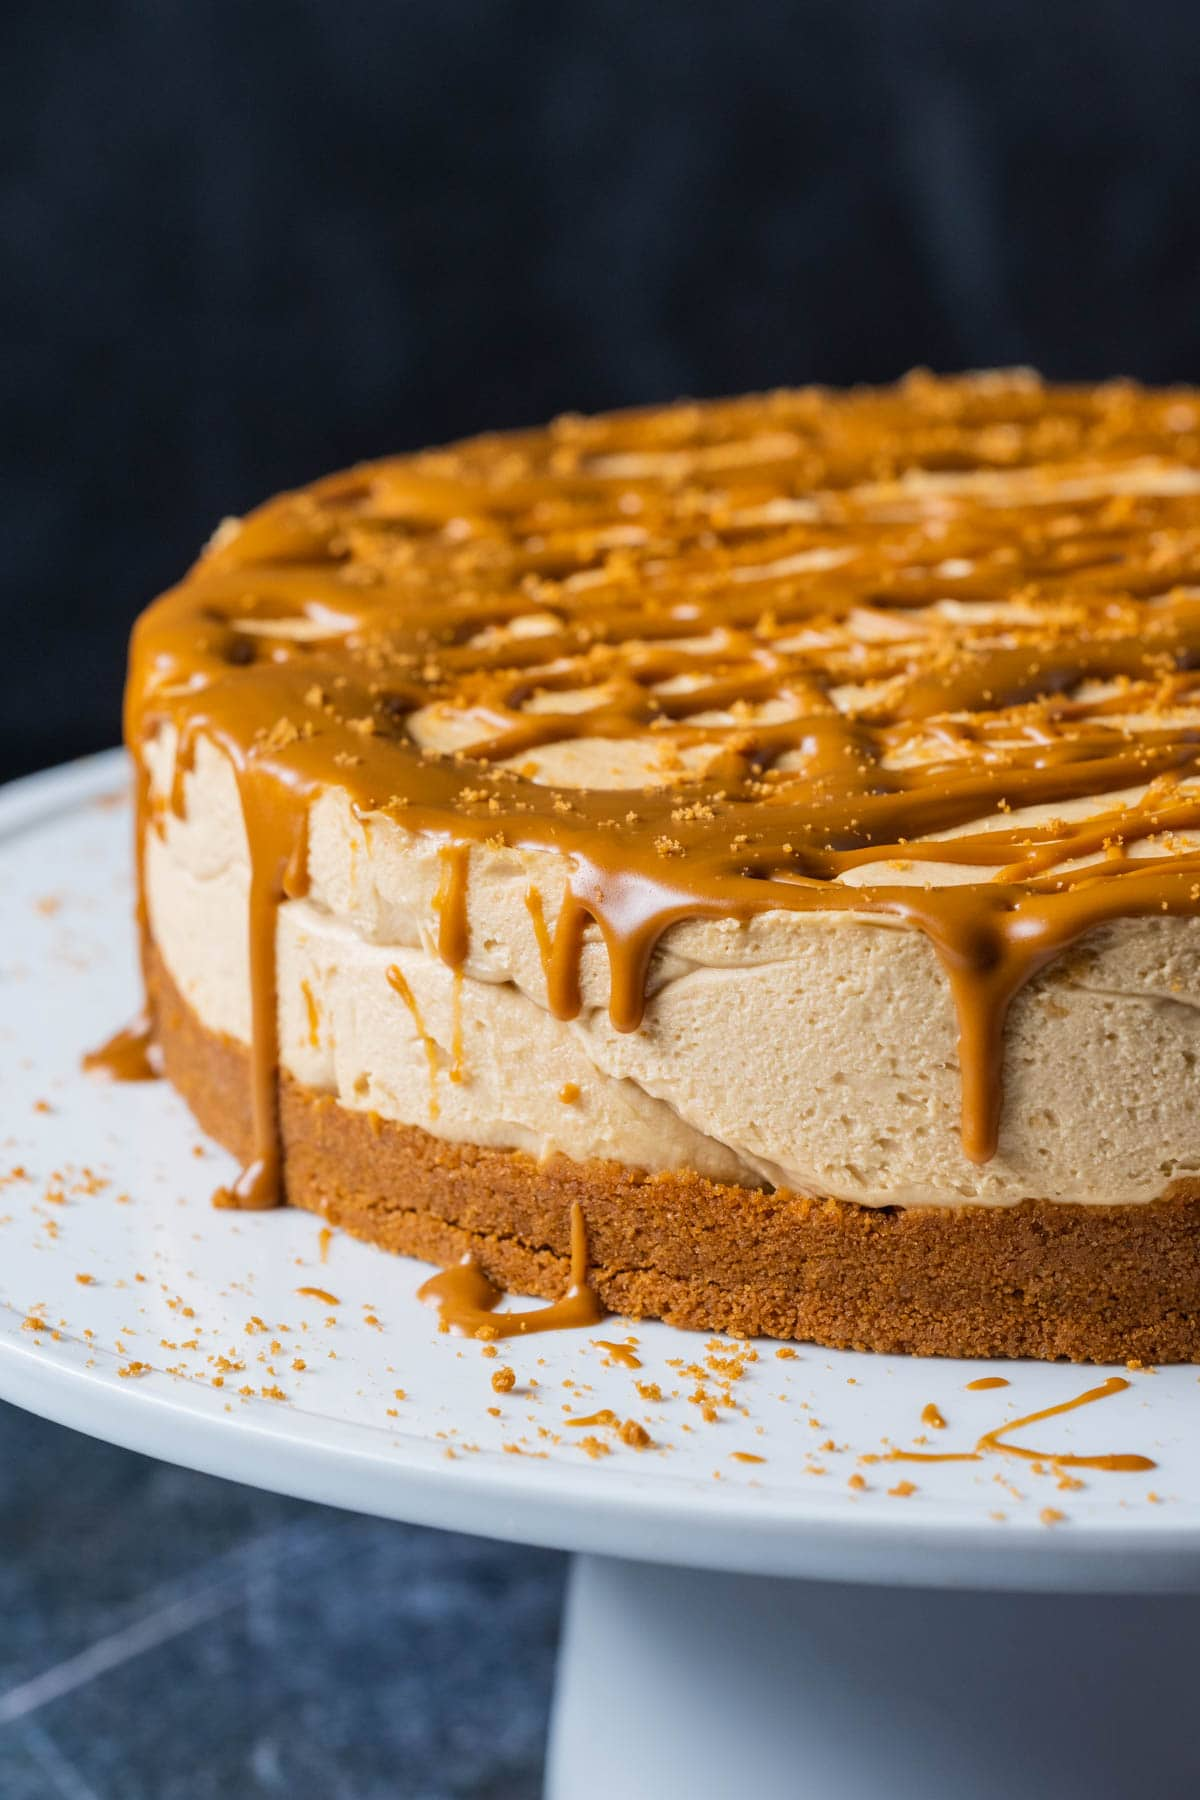 Biscoff cheesecake on a white cake stand.